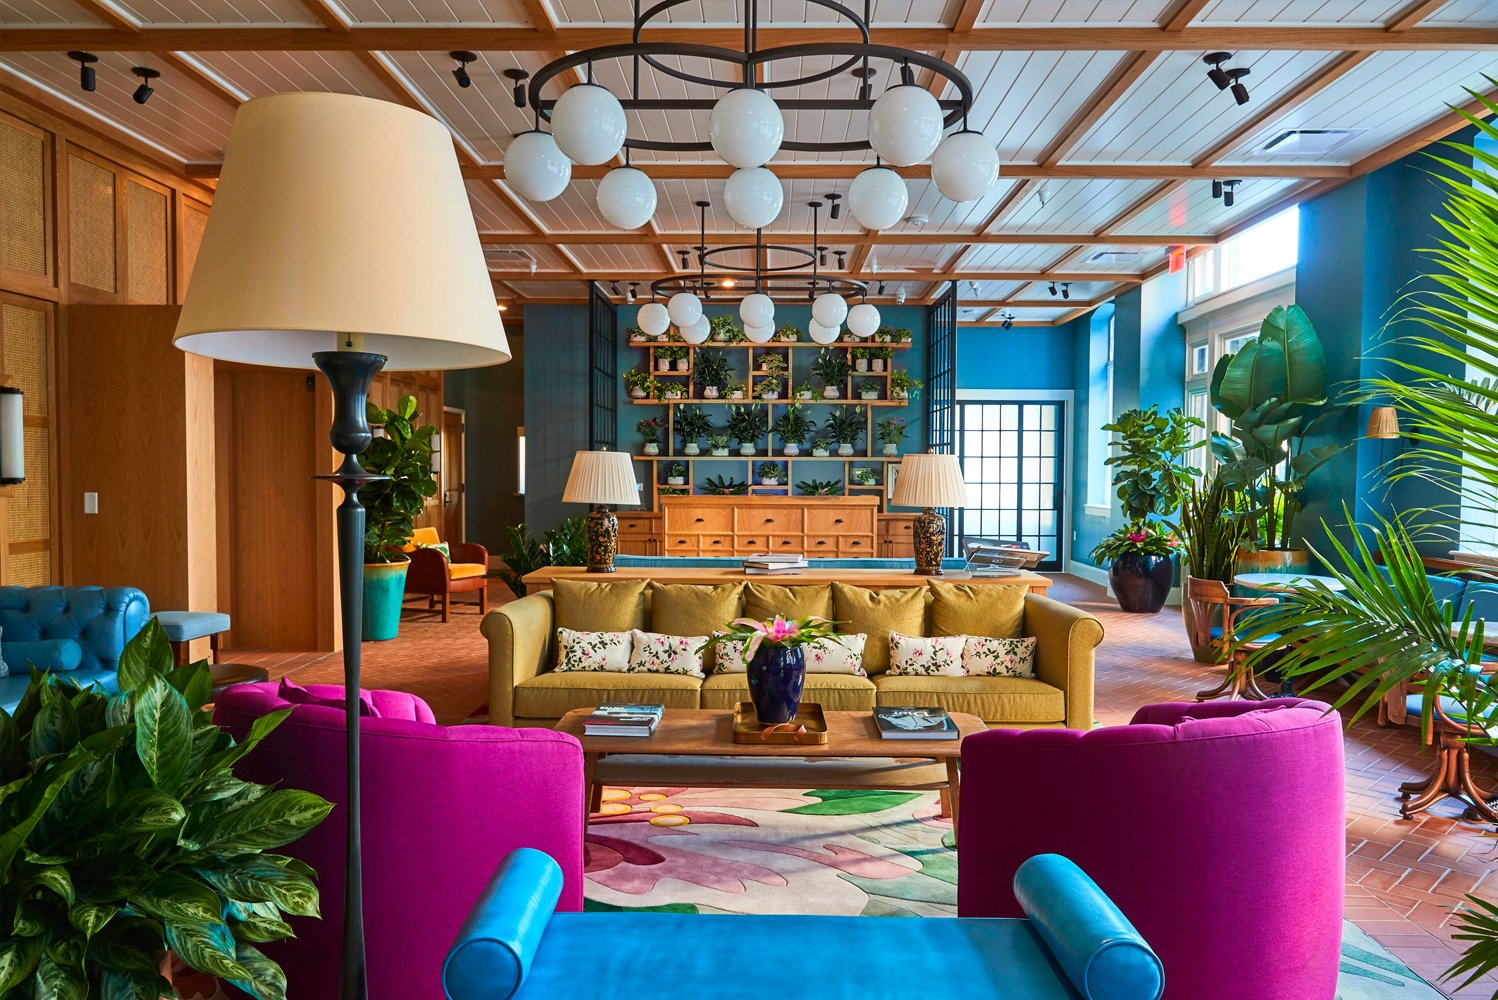 New York-based design firm nemaworkshop completed the interiors of The Drayton Hotel in the Historic District of Savannah, Georgia.